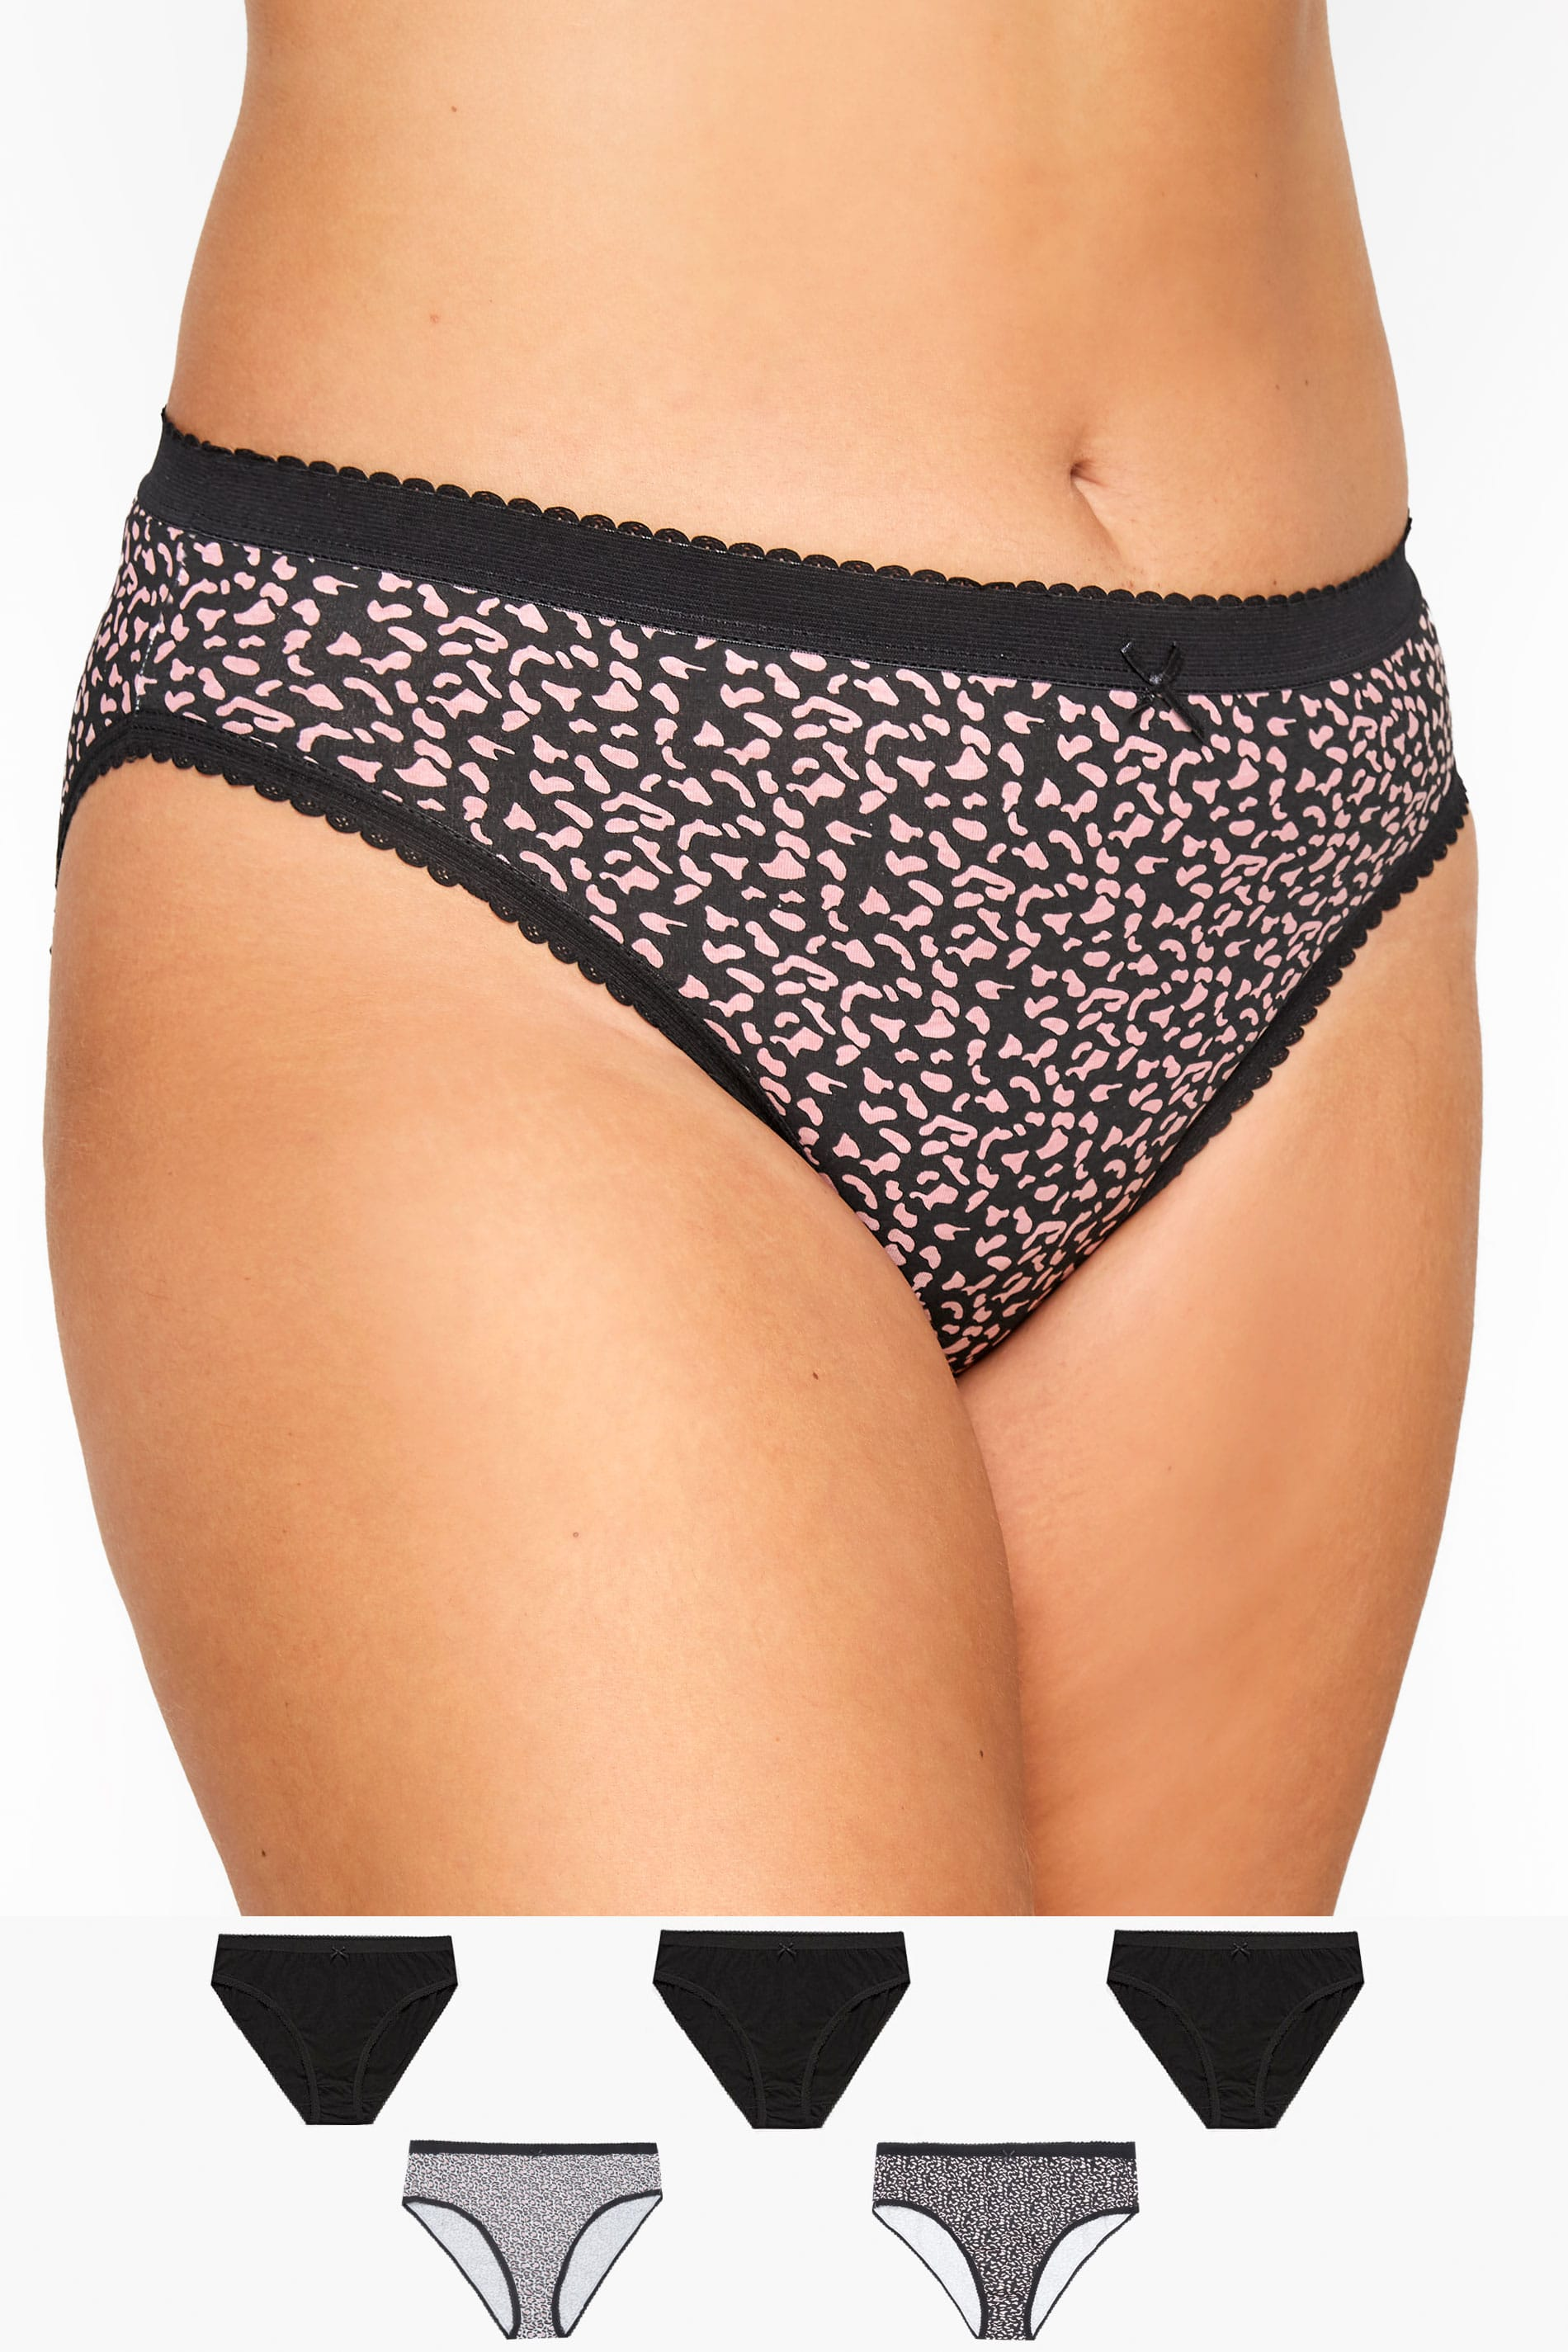 5 PACK Black Animal Print High Leg Briefs